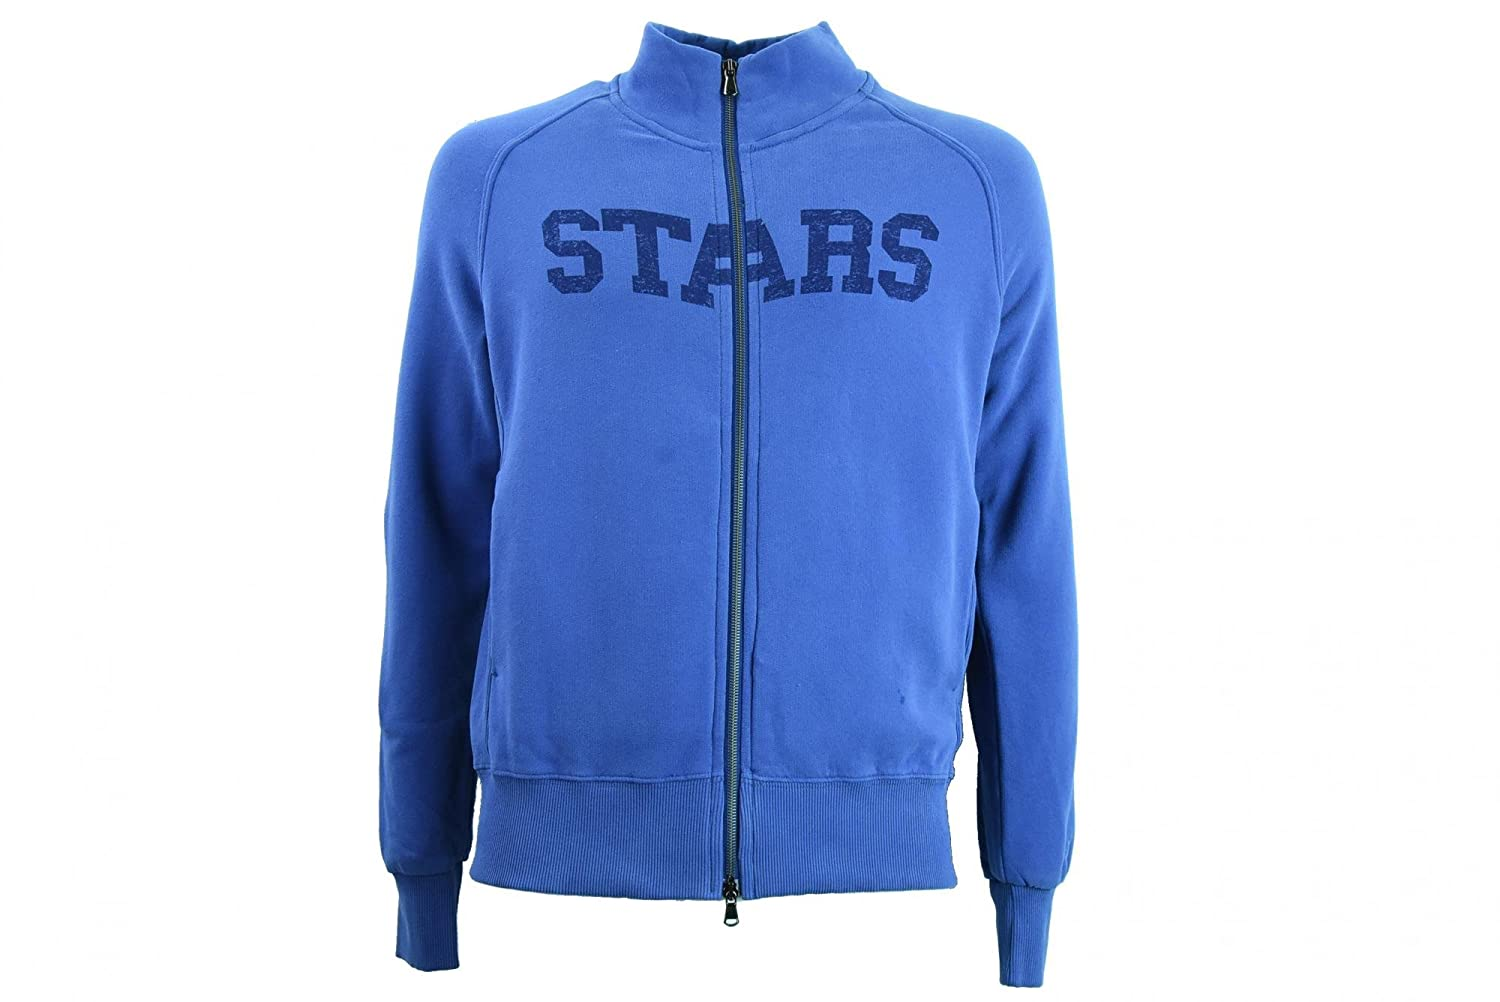 ATLANTIC STARS HAKA AFM1708 zip Sweatshirt